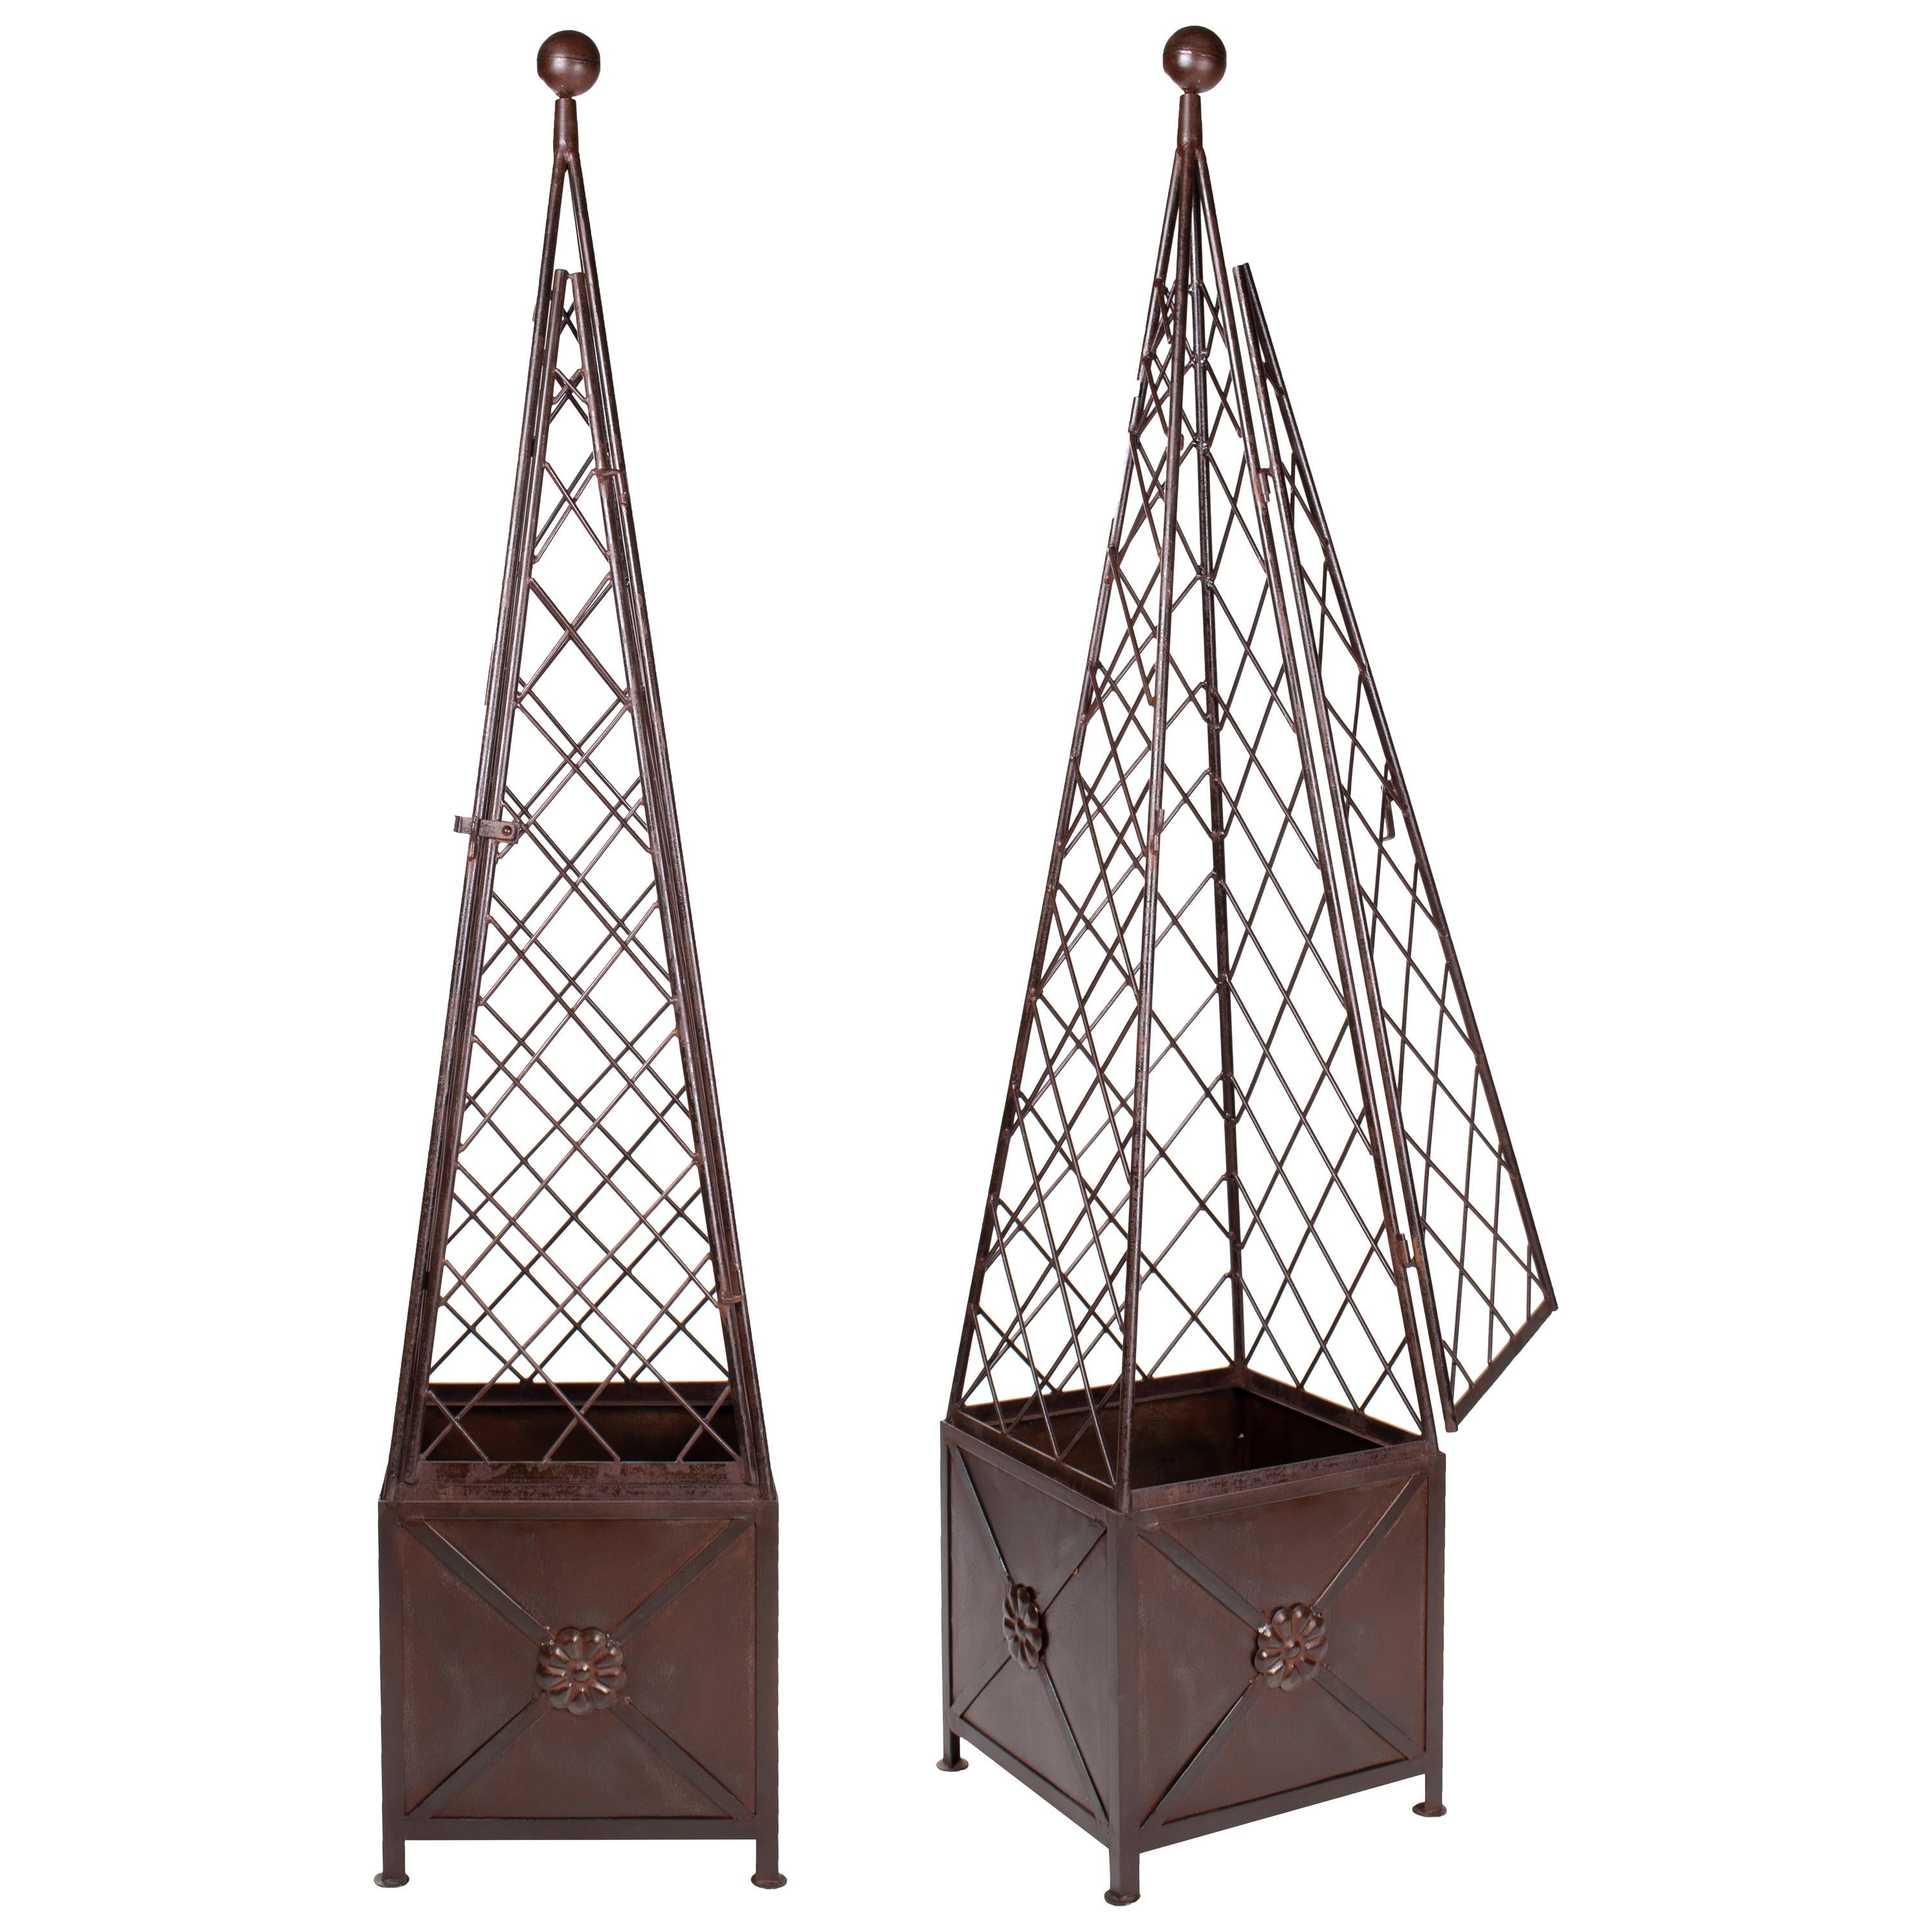 Pair of Classical French Style Iron Obelisks with Base